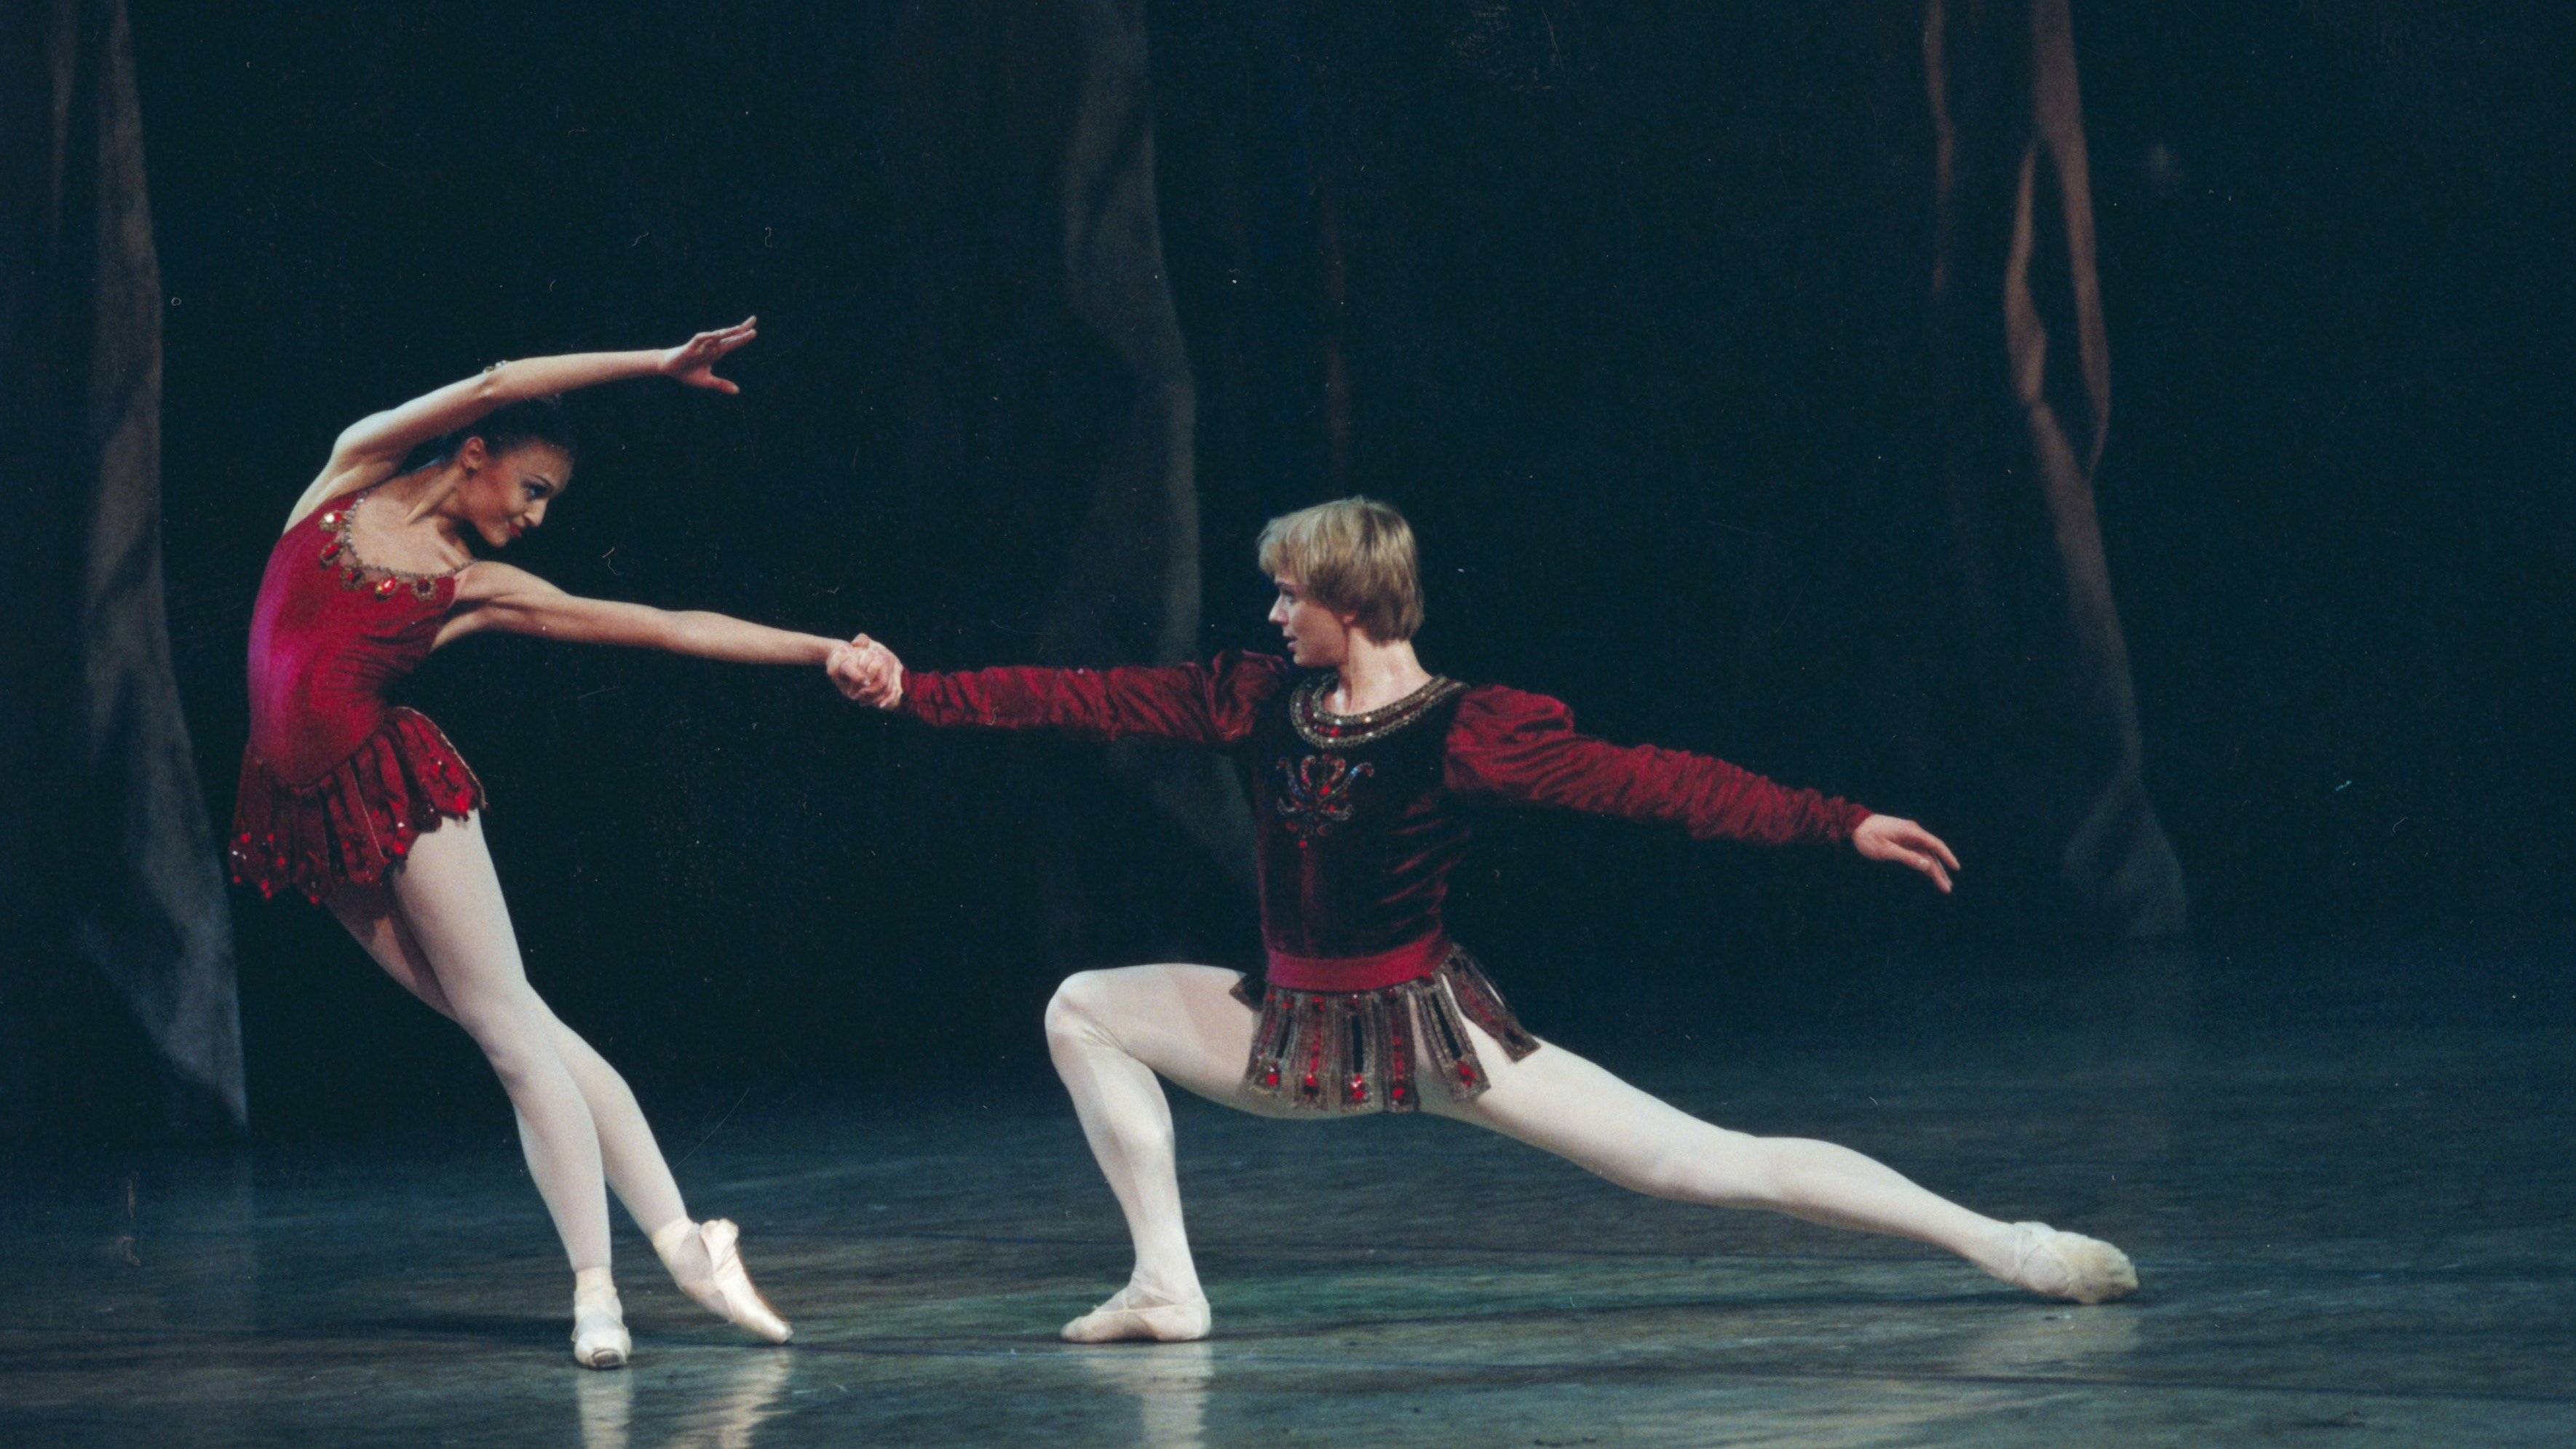 Jewels by Balanchine, music by Fauré, Stravinsky, and Tchaikovsky